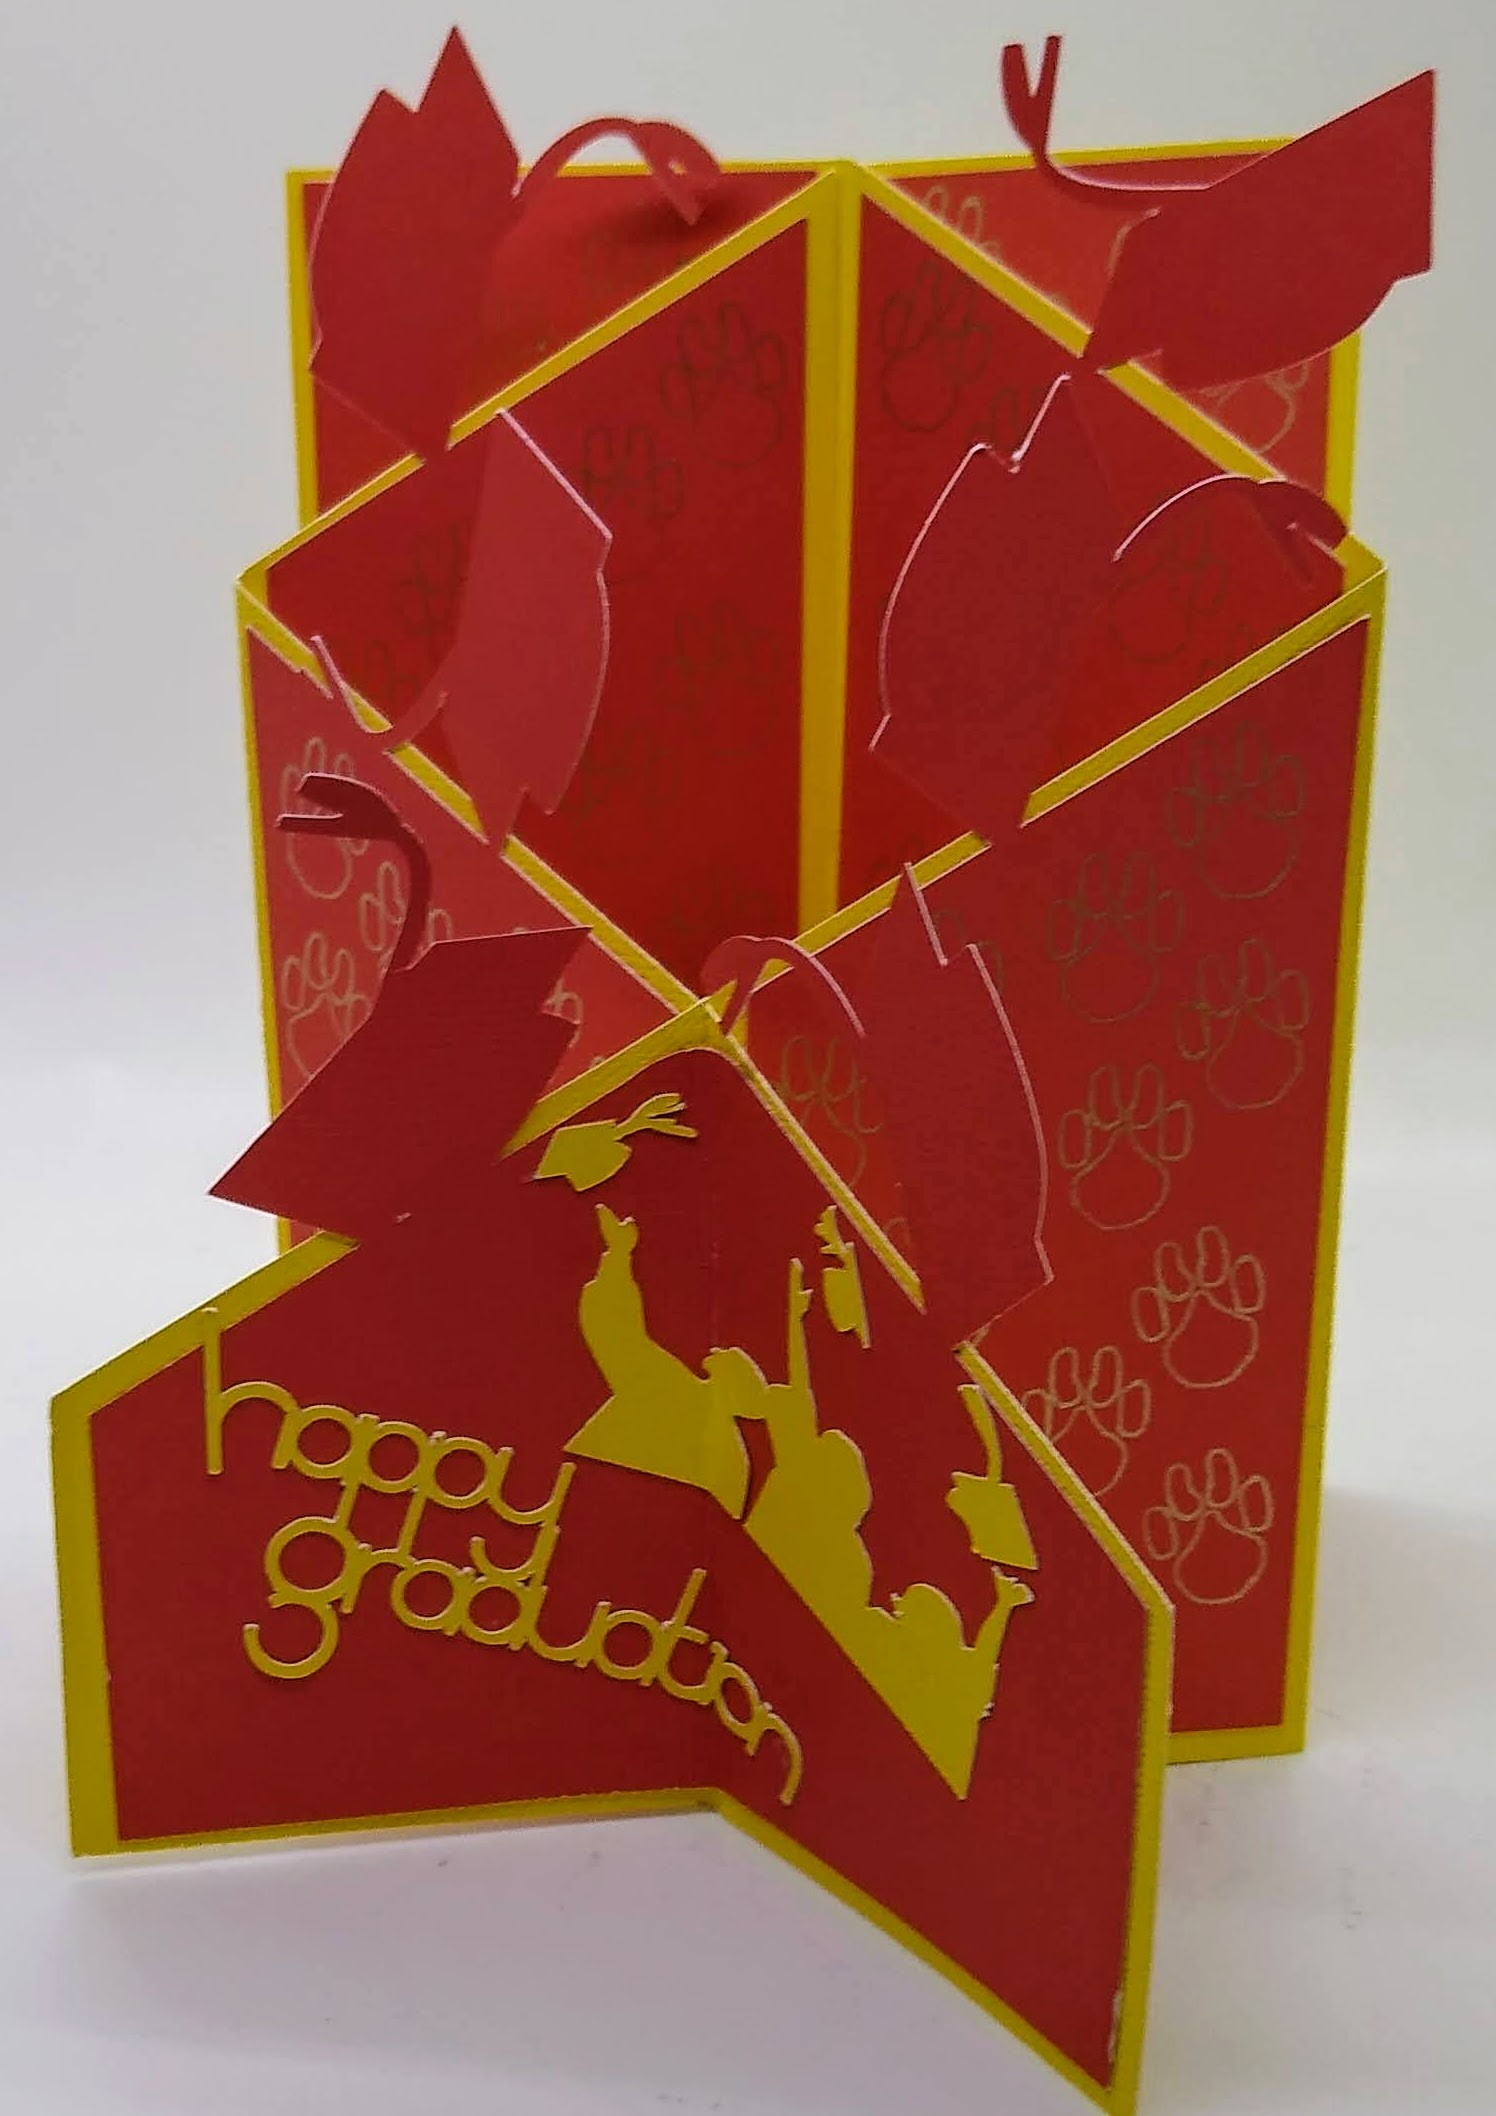 Zig Zag Graduation Card With Throwing Caps